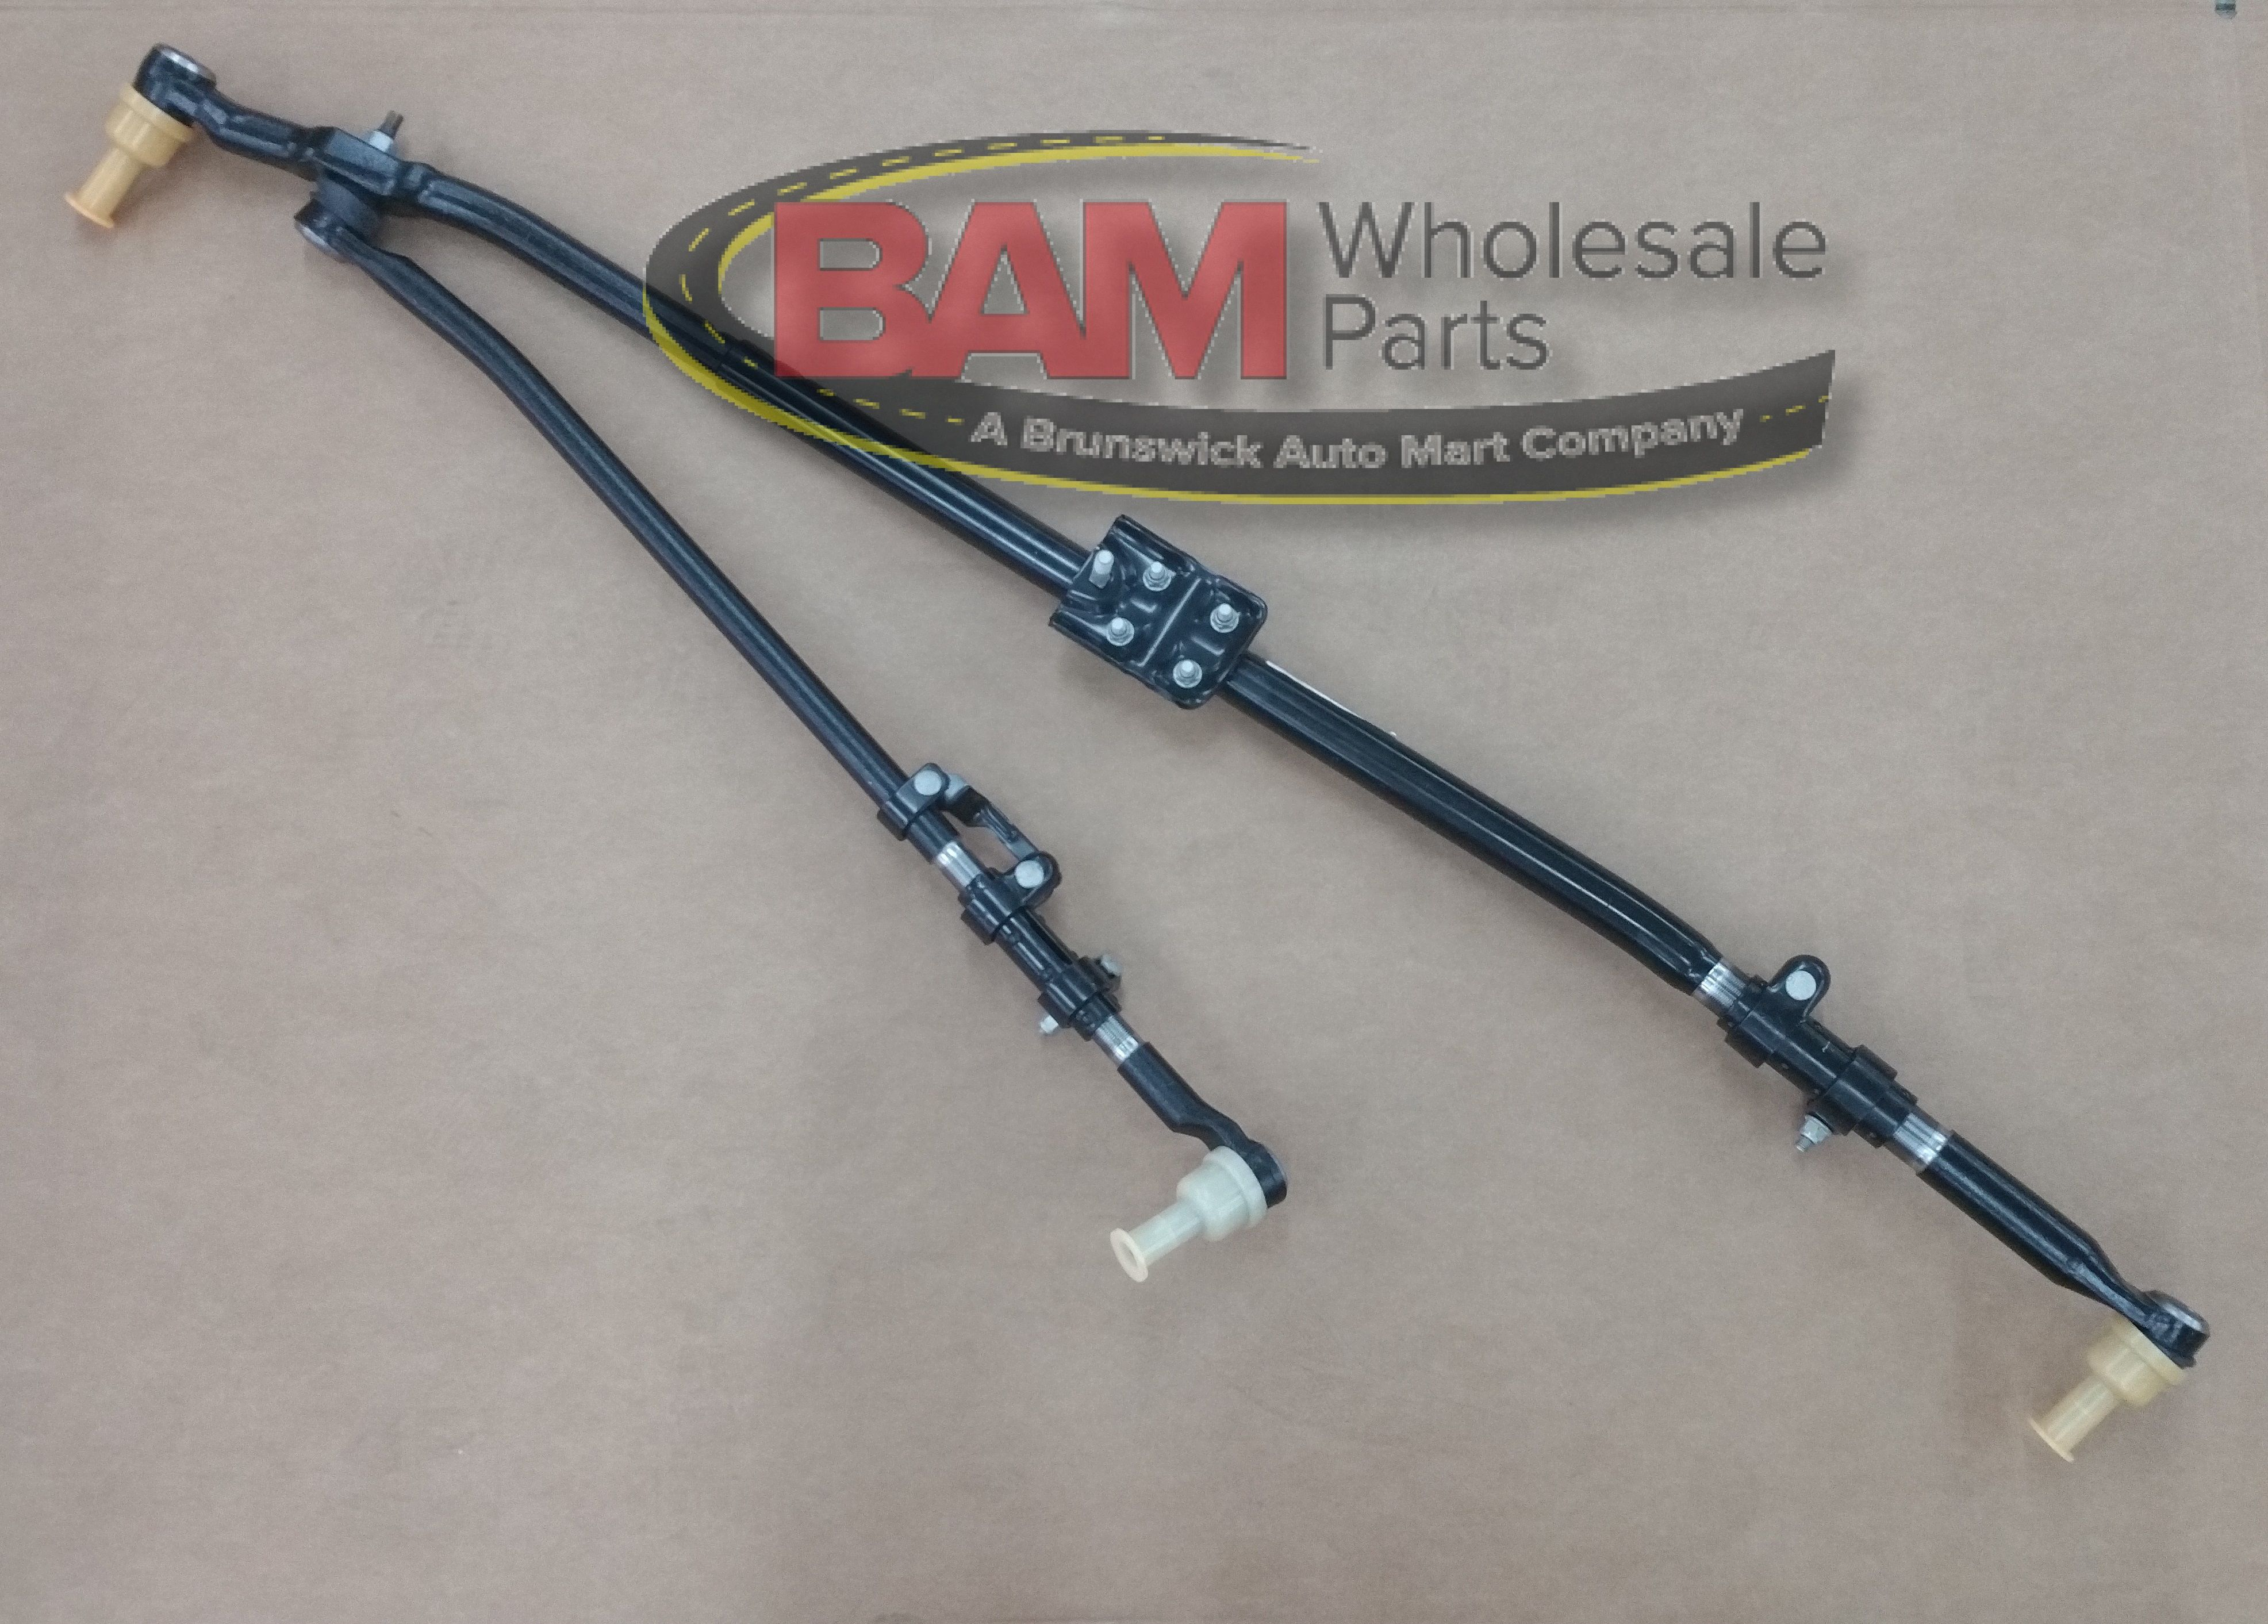 lighting amp of inspirational free for solenoid lamps acura sale used dodge expensive transpartsnow oem pack parts page